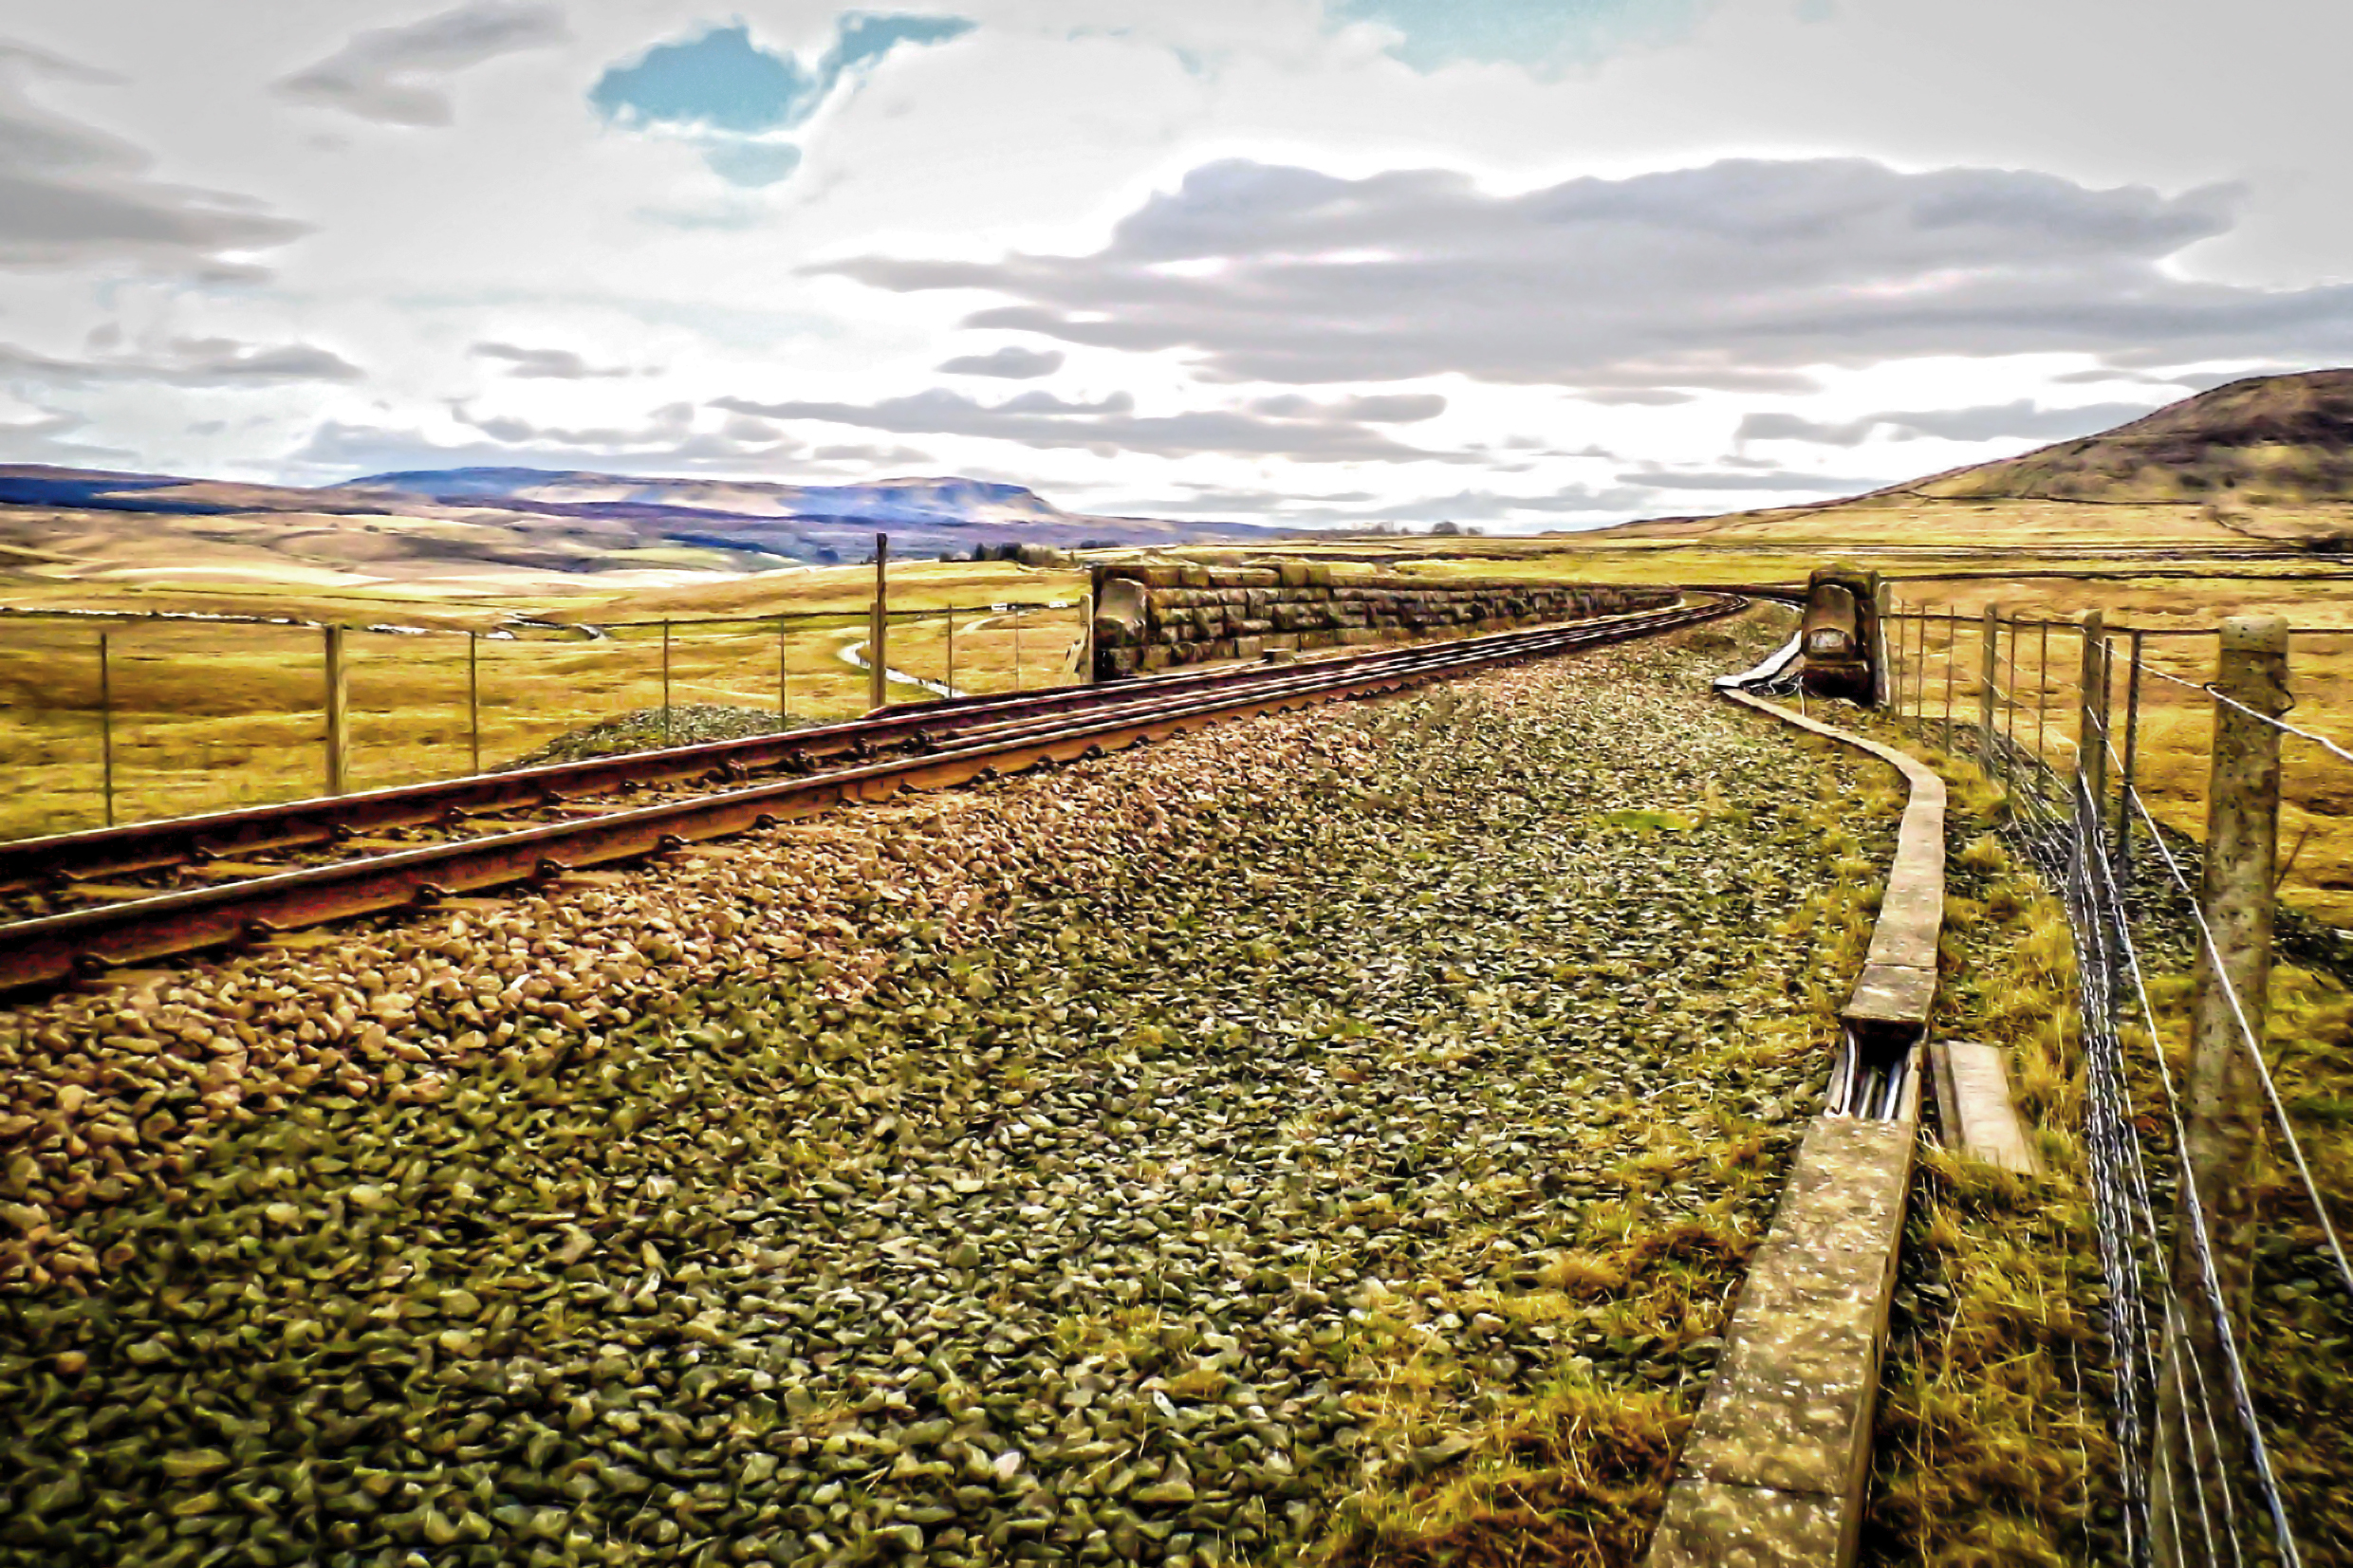 The Top of Ribblehead Viaduct.